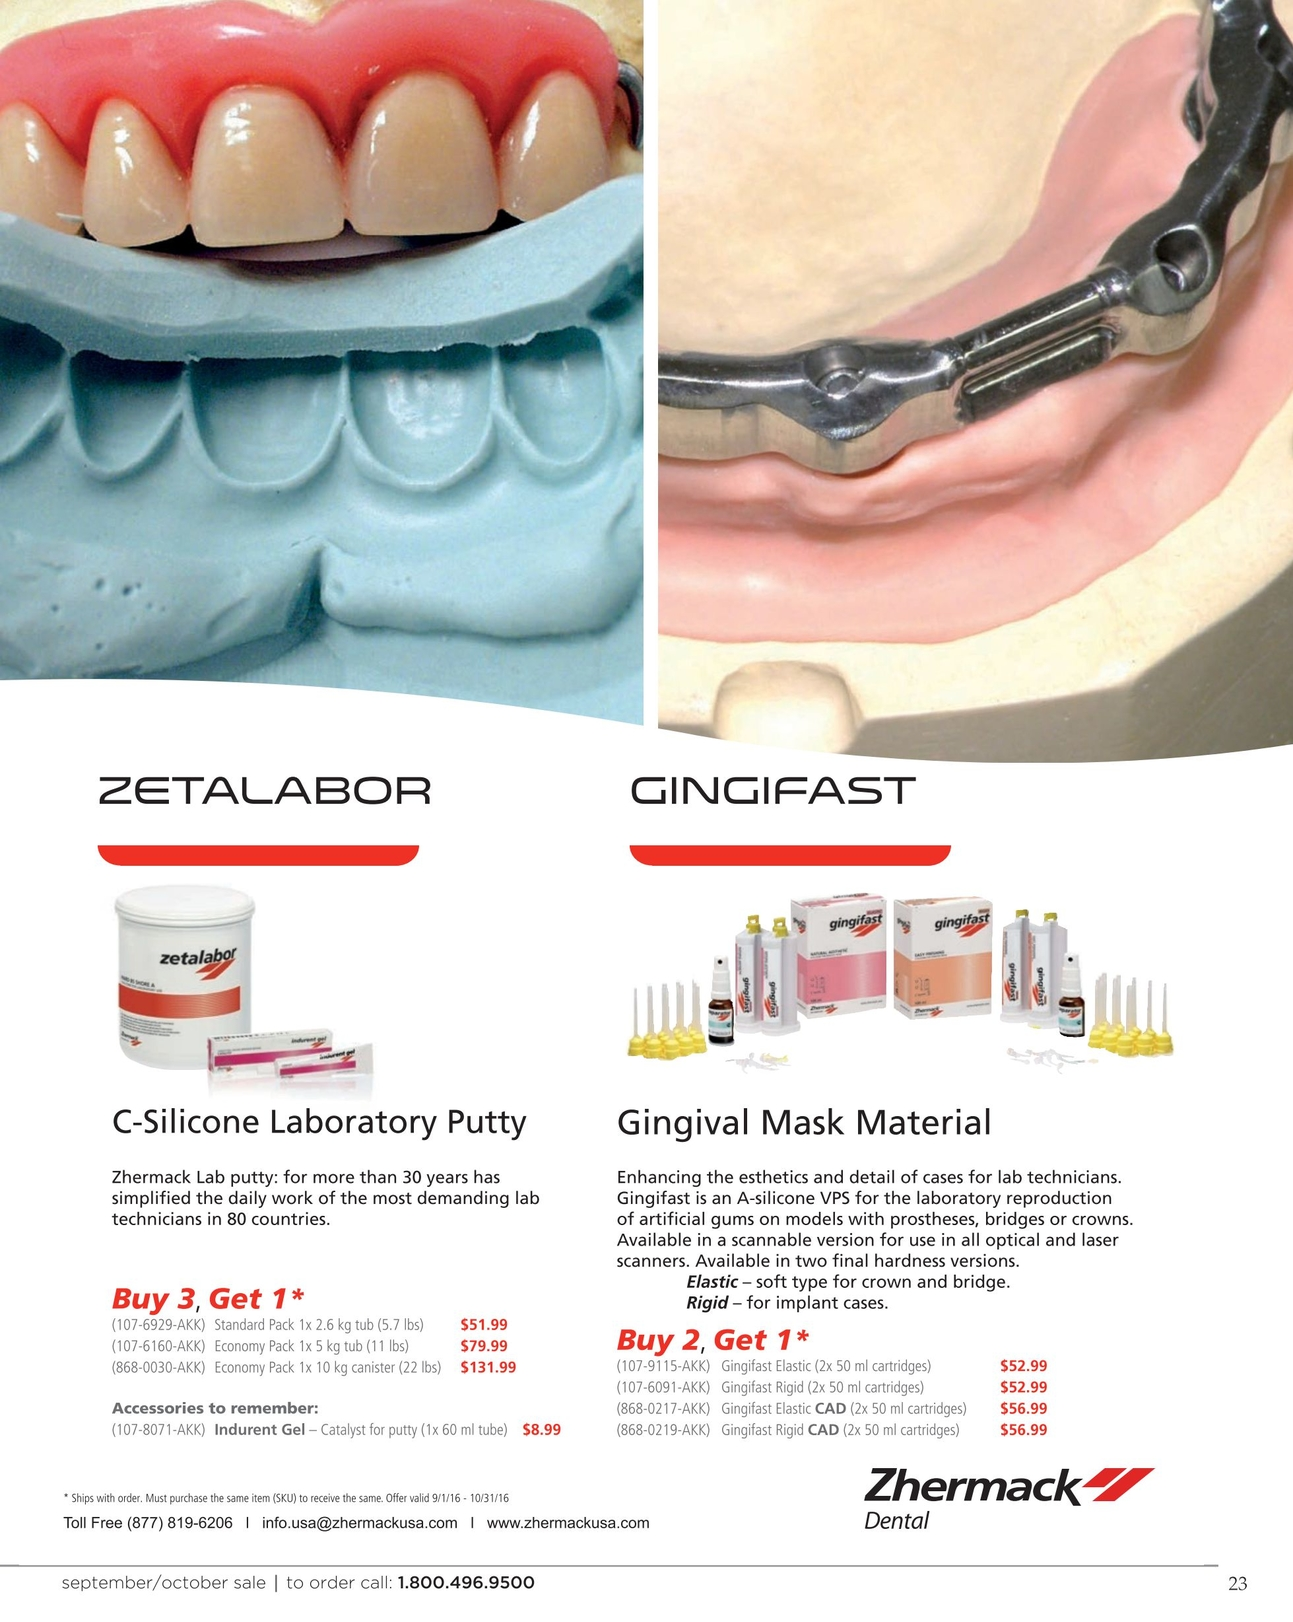 Zahn Dental Sales - September/October 2016